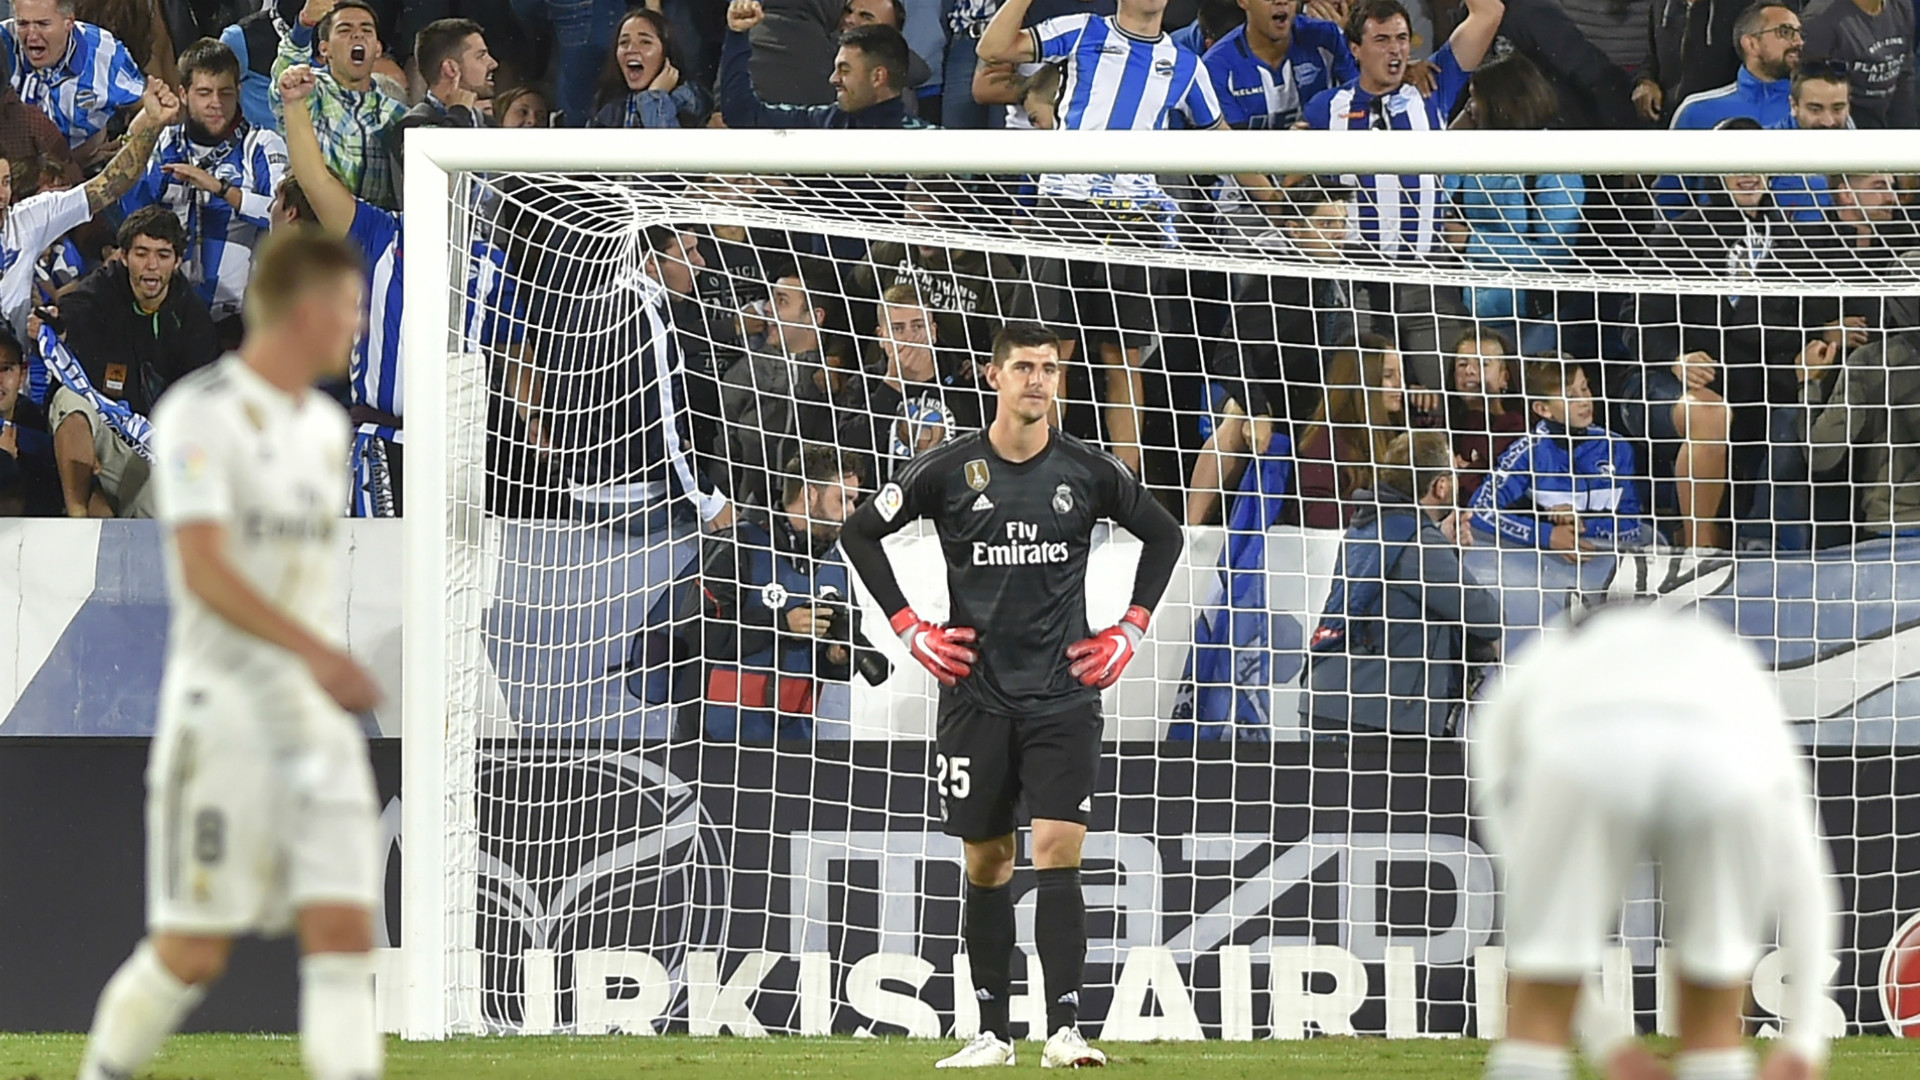 Thibaut Courtois, Real Madrid v Alaves, 2018